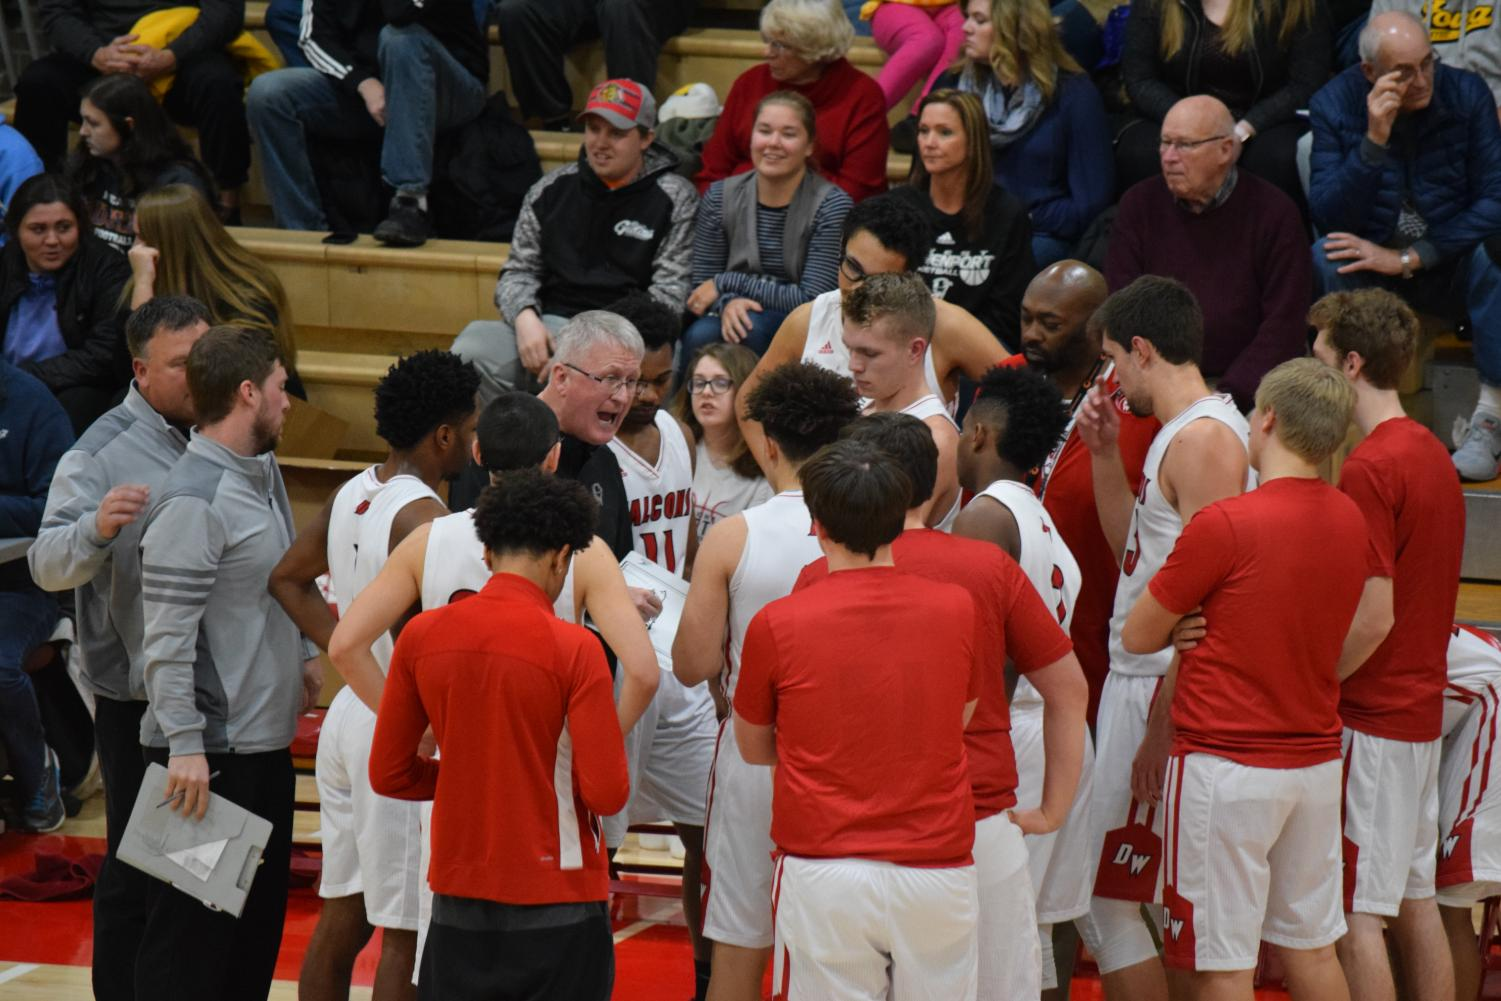 Varsity boys basketball huddle before the next play.